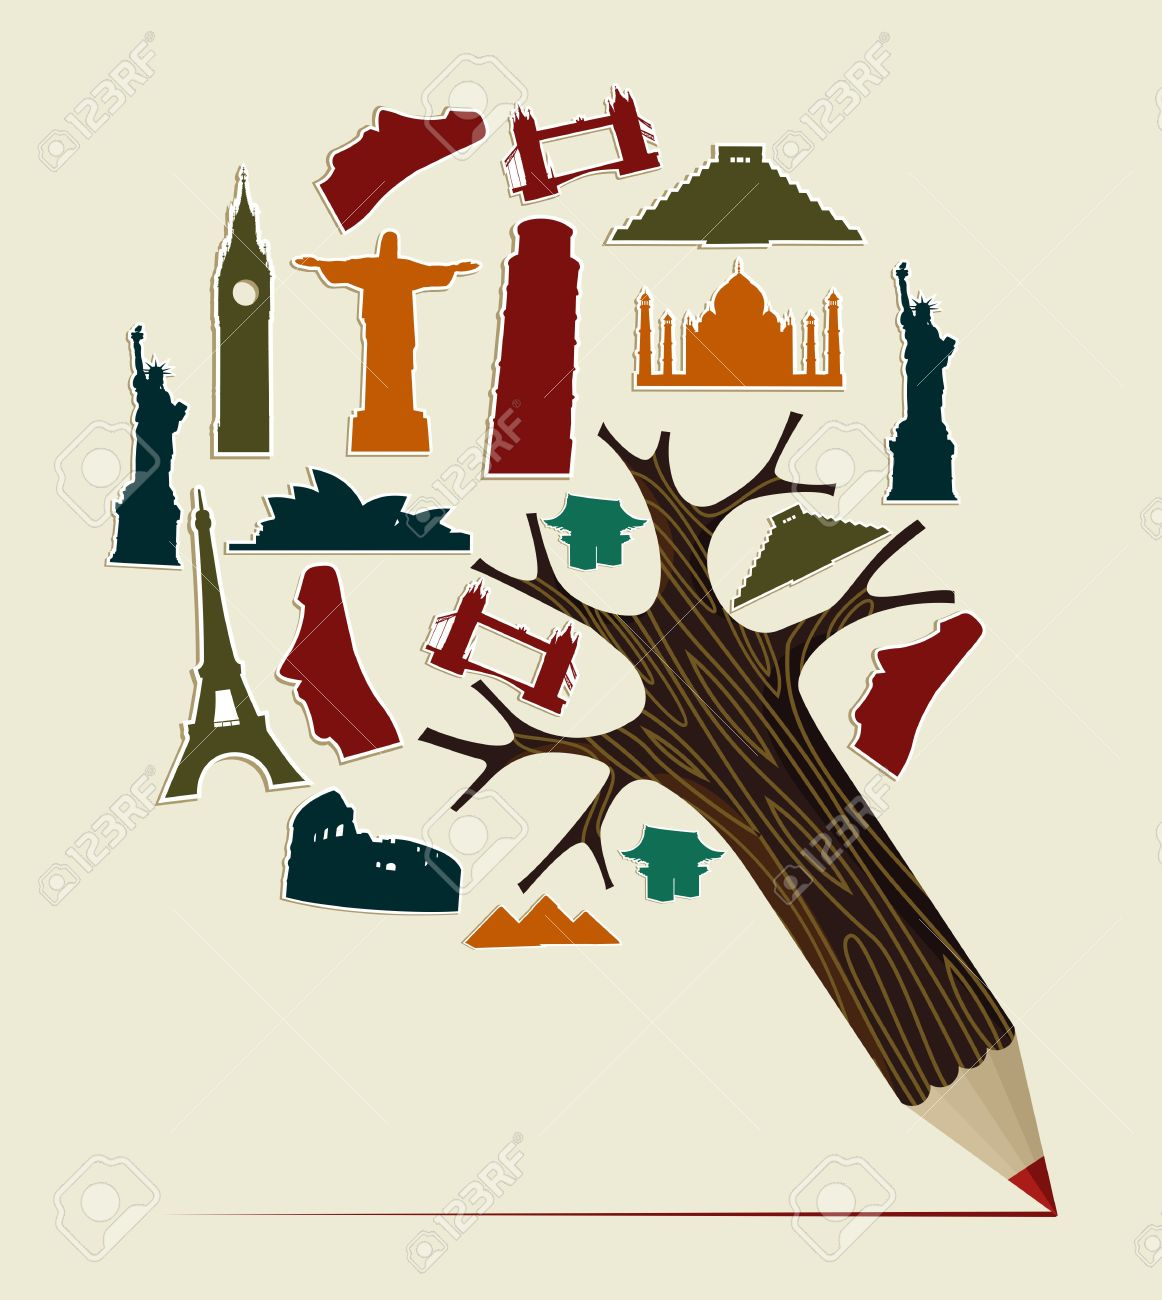 Pencil Tree Shaped Made With World Landmarks Silhouettes Elements.